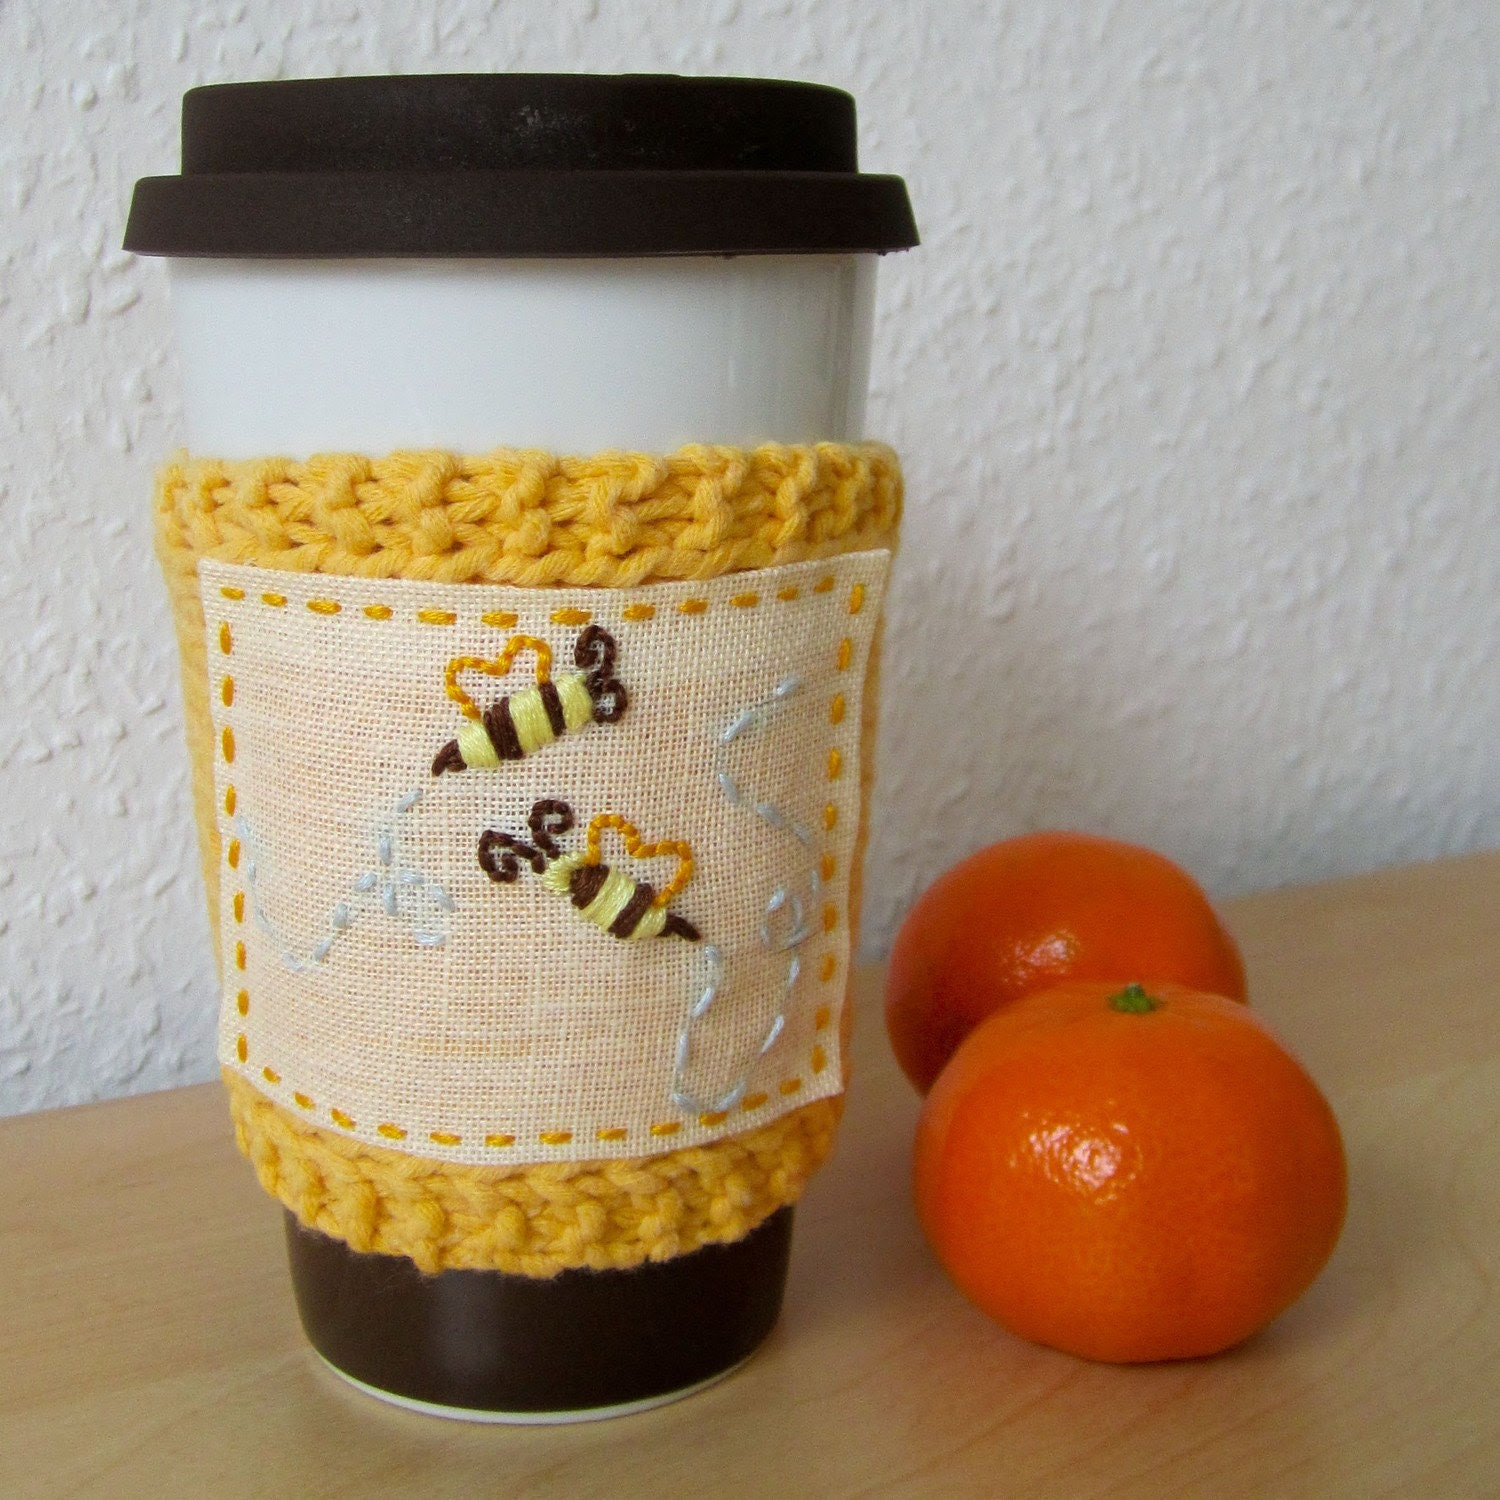 Reusable knitted coffee sleeve with embroidered honeybees.